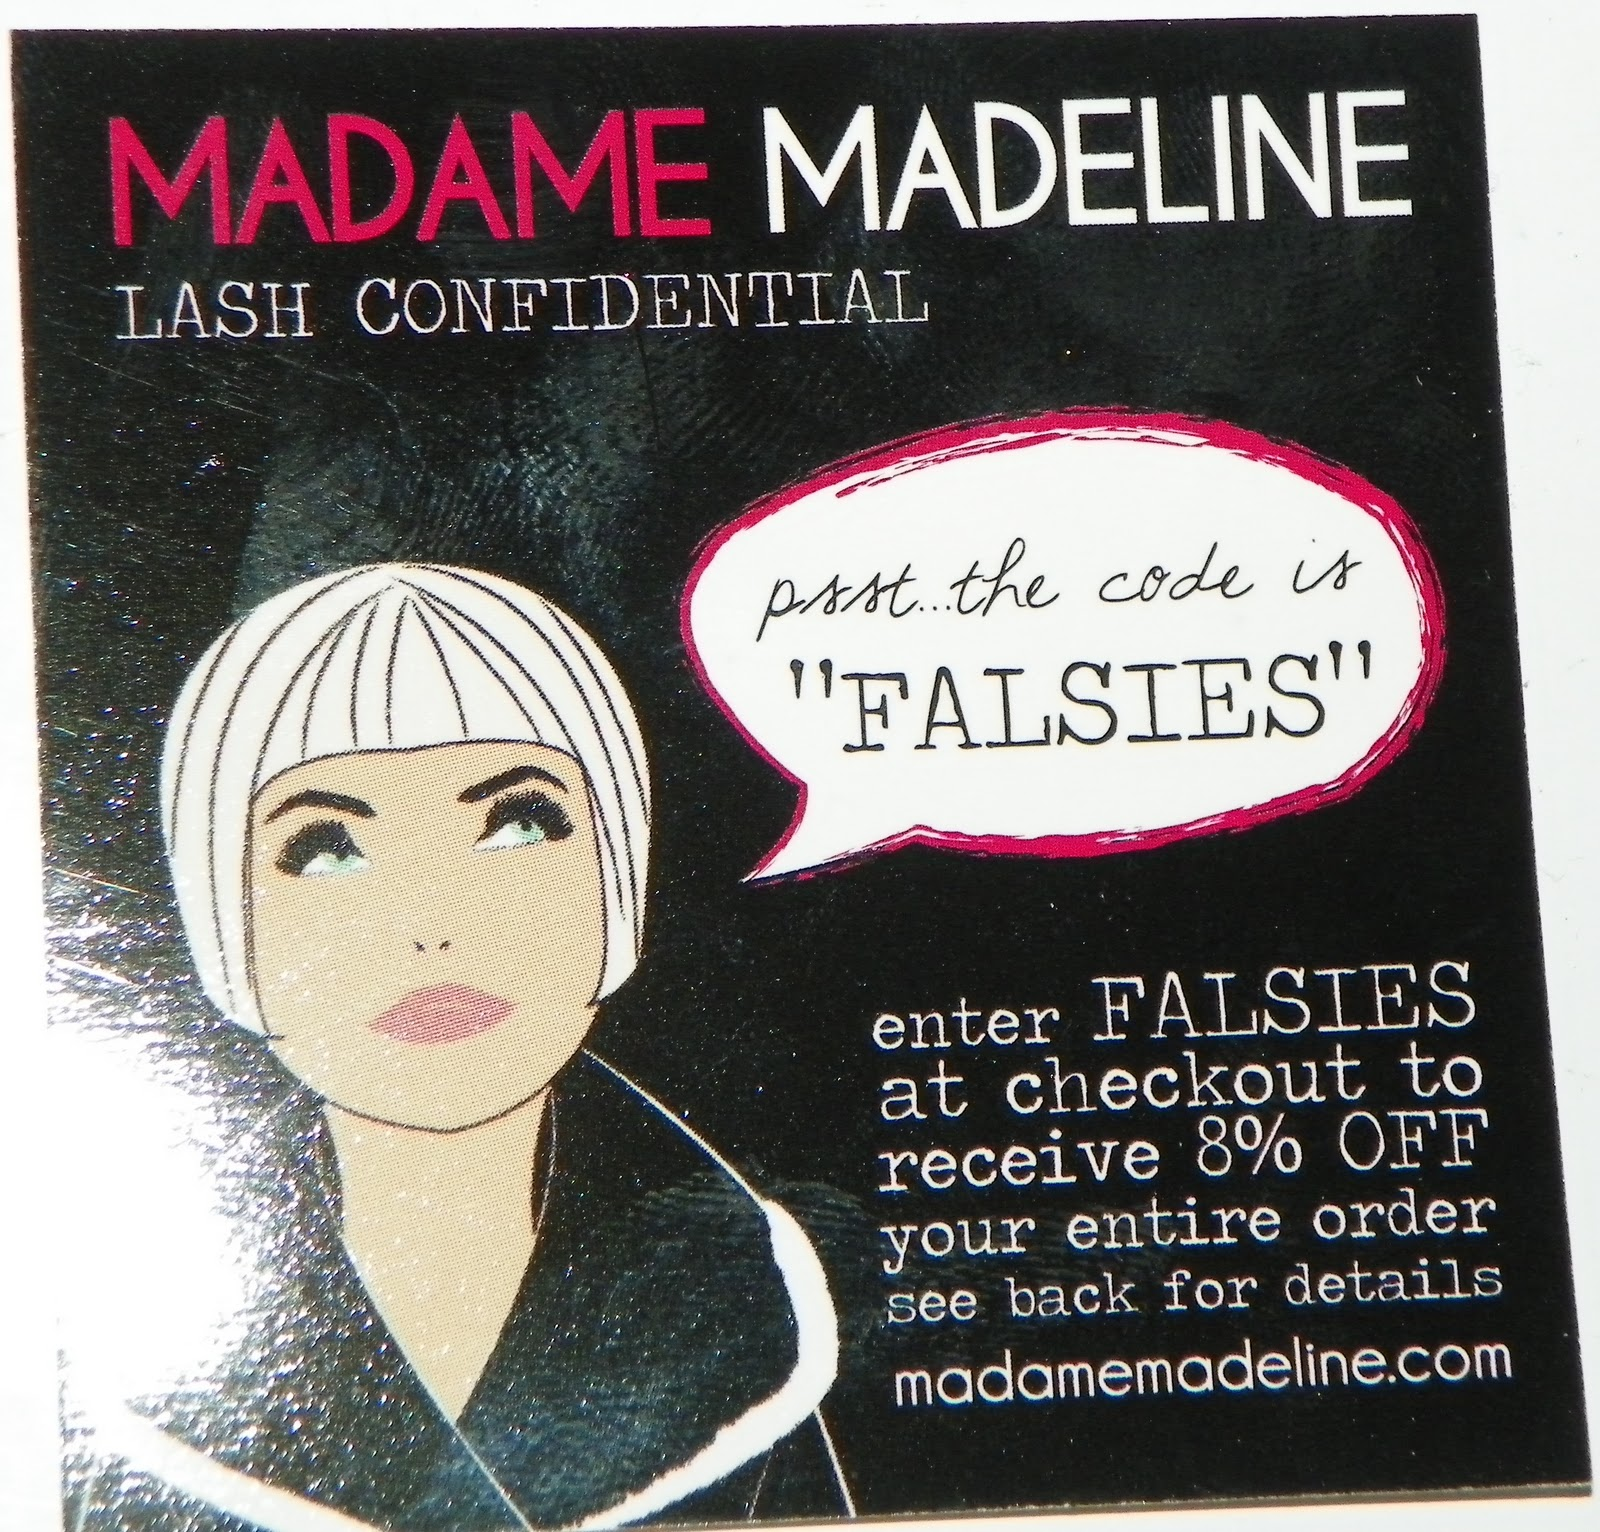 We have 24 Madame Madeline promo codes for you to choose from including 22 coupon codes, 1 sale, and 1 free shipping coupon code. Most popular now: 18% Off Madame Madeline Coupon. Latest offer: 18% Off Madame Madeline Coupon%(6).